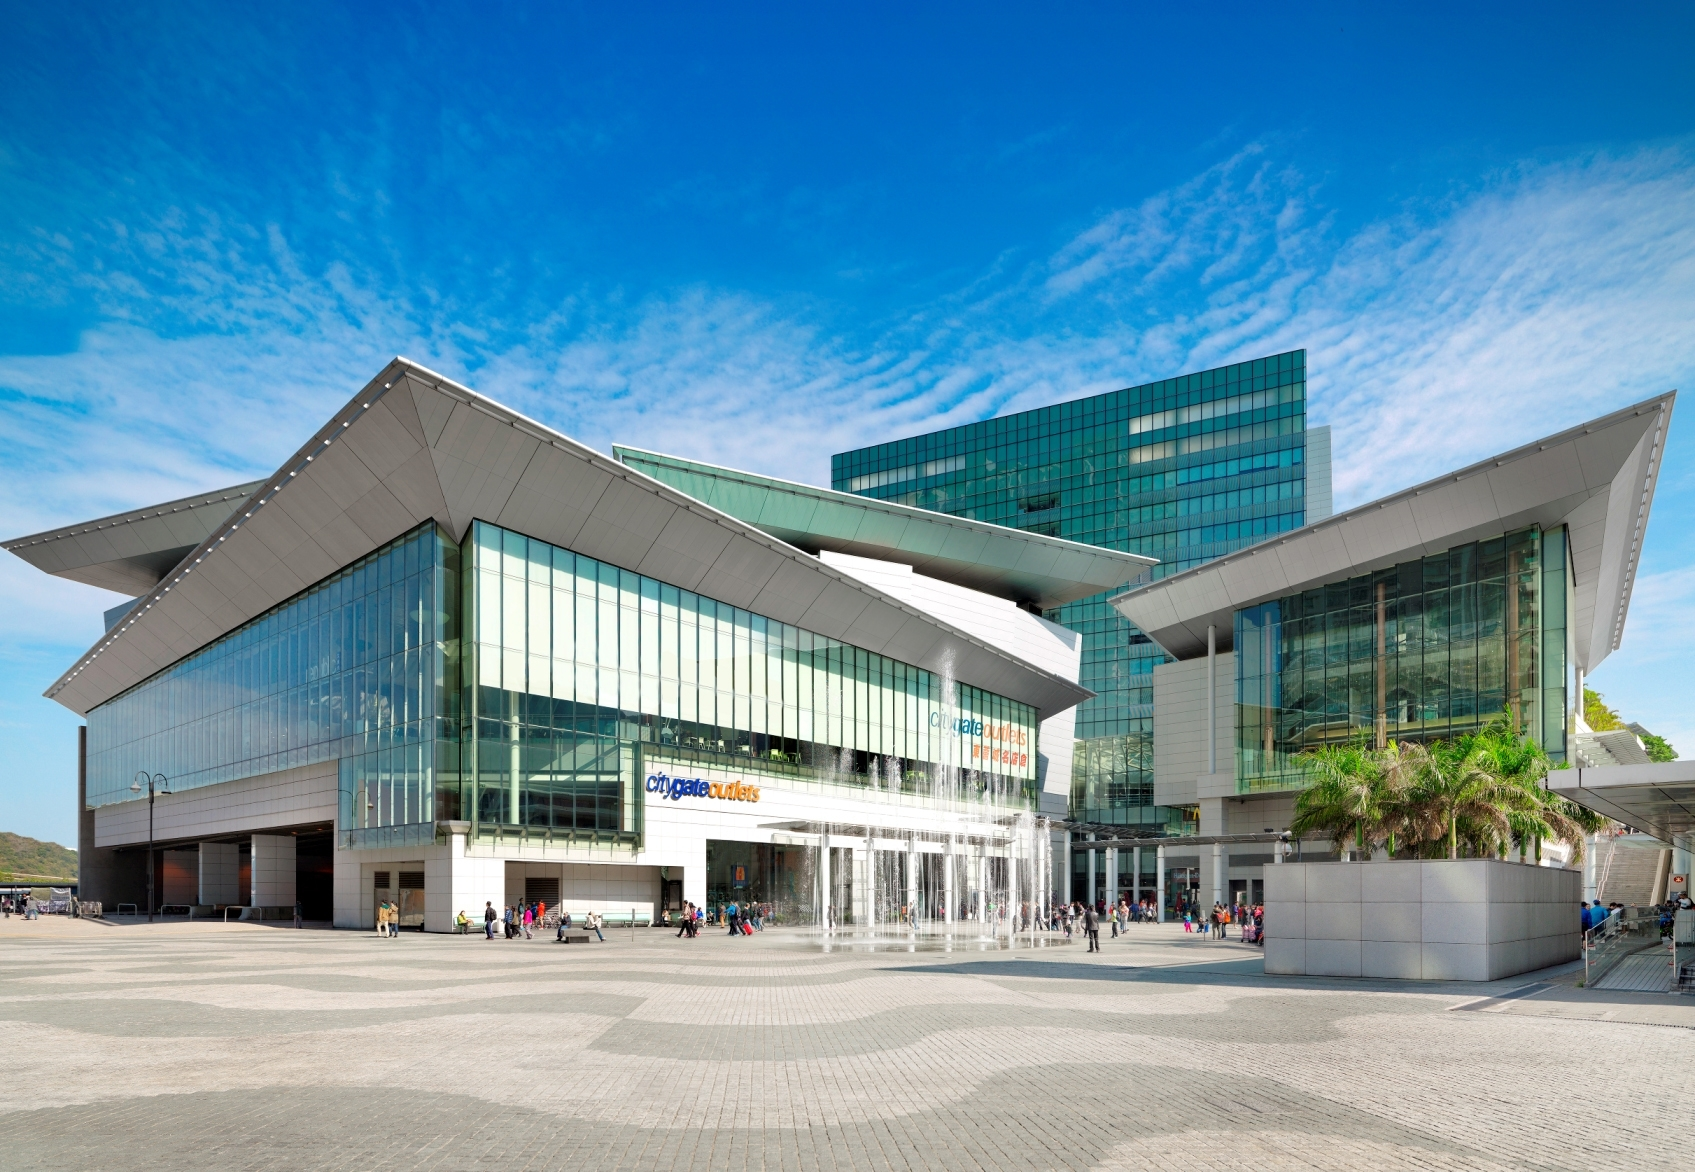 Hong Kong's best outlet malls